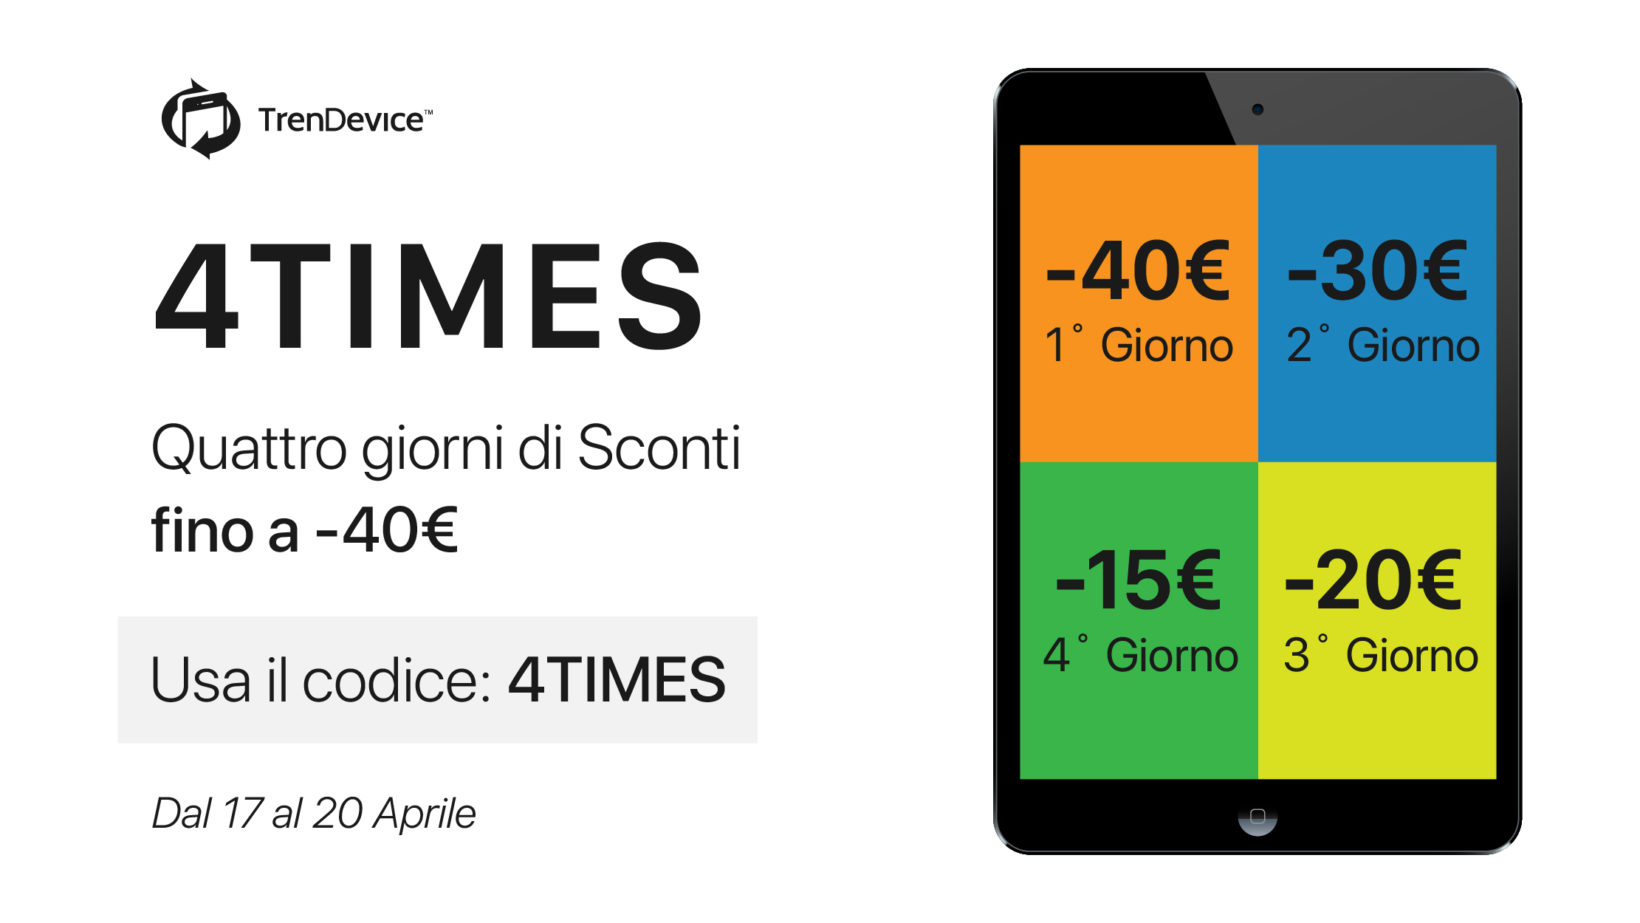 trendevice offerta 4times